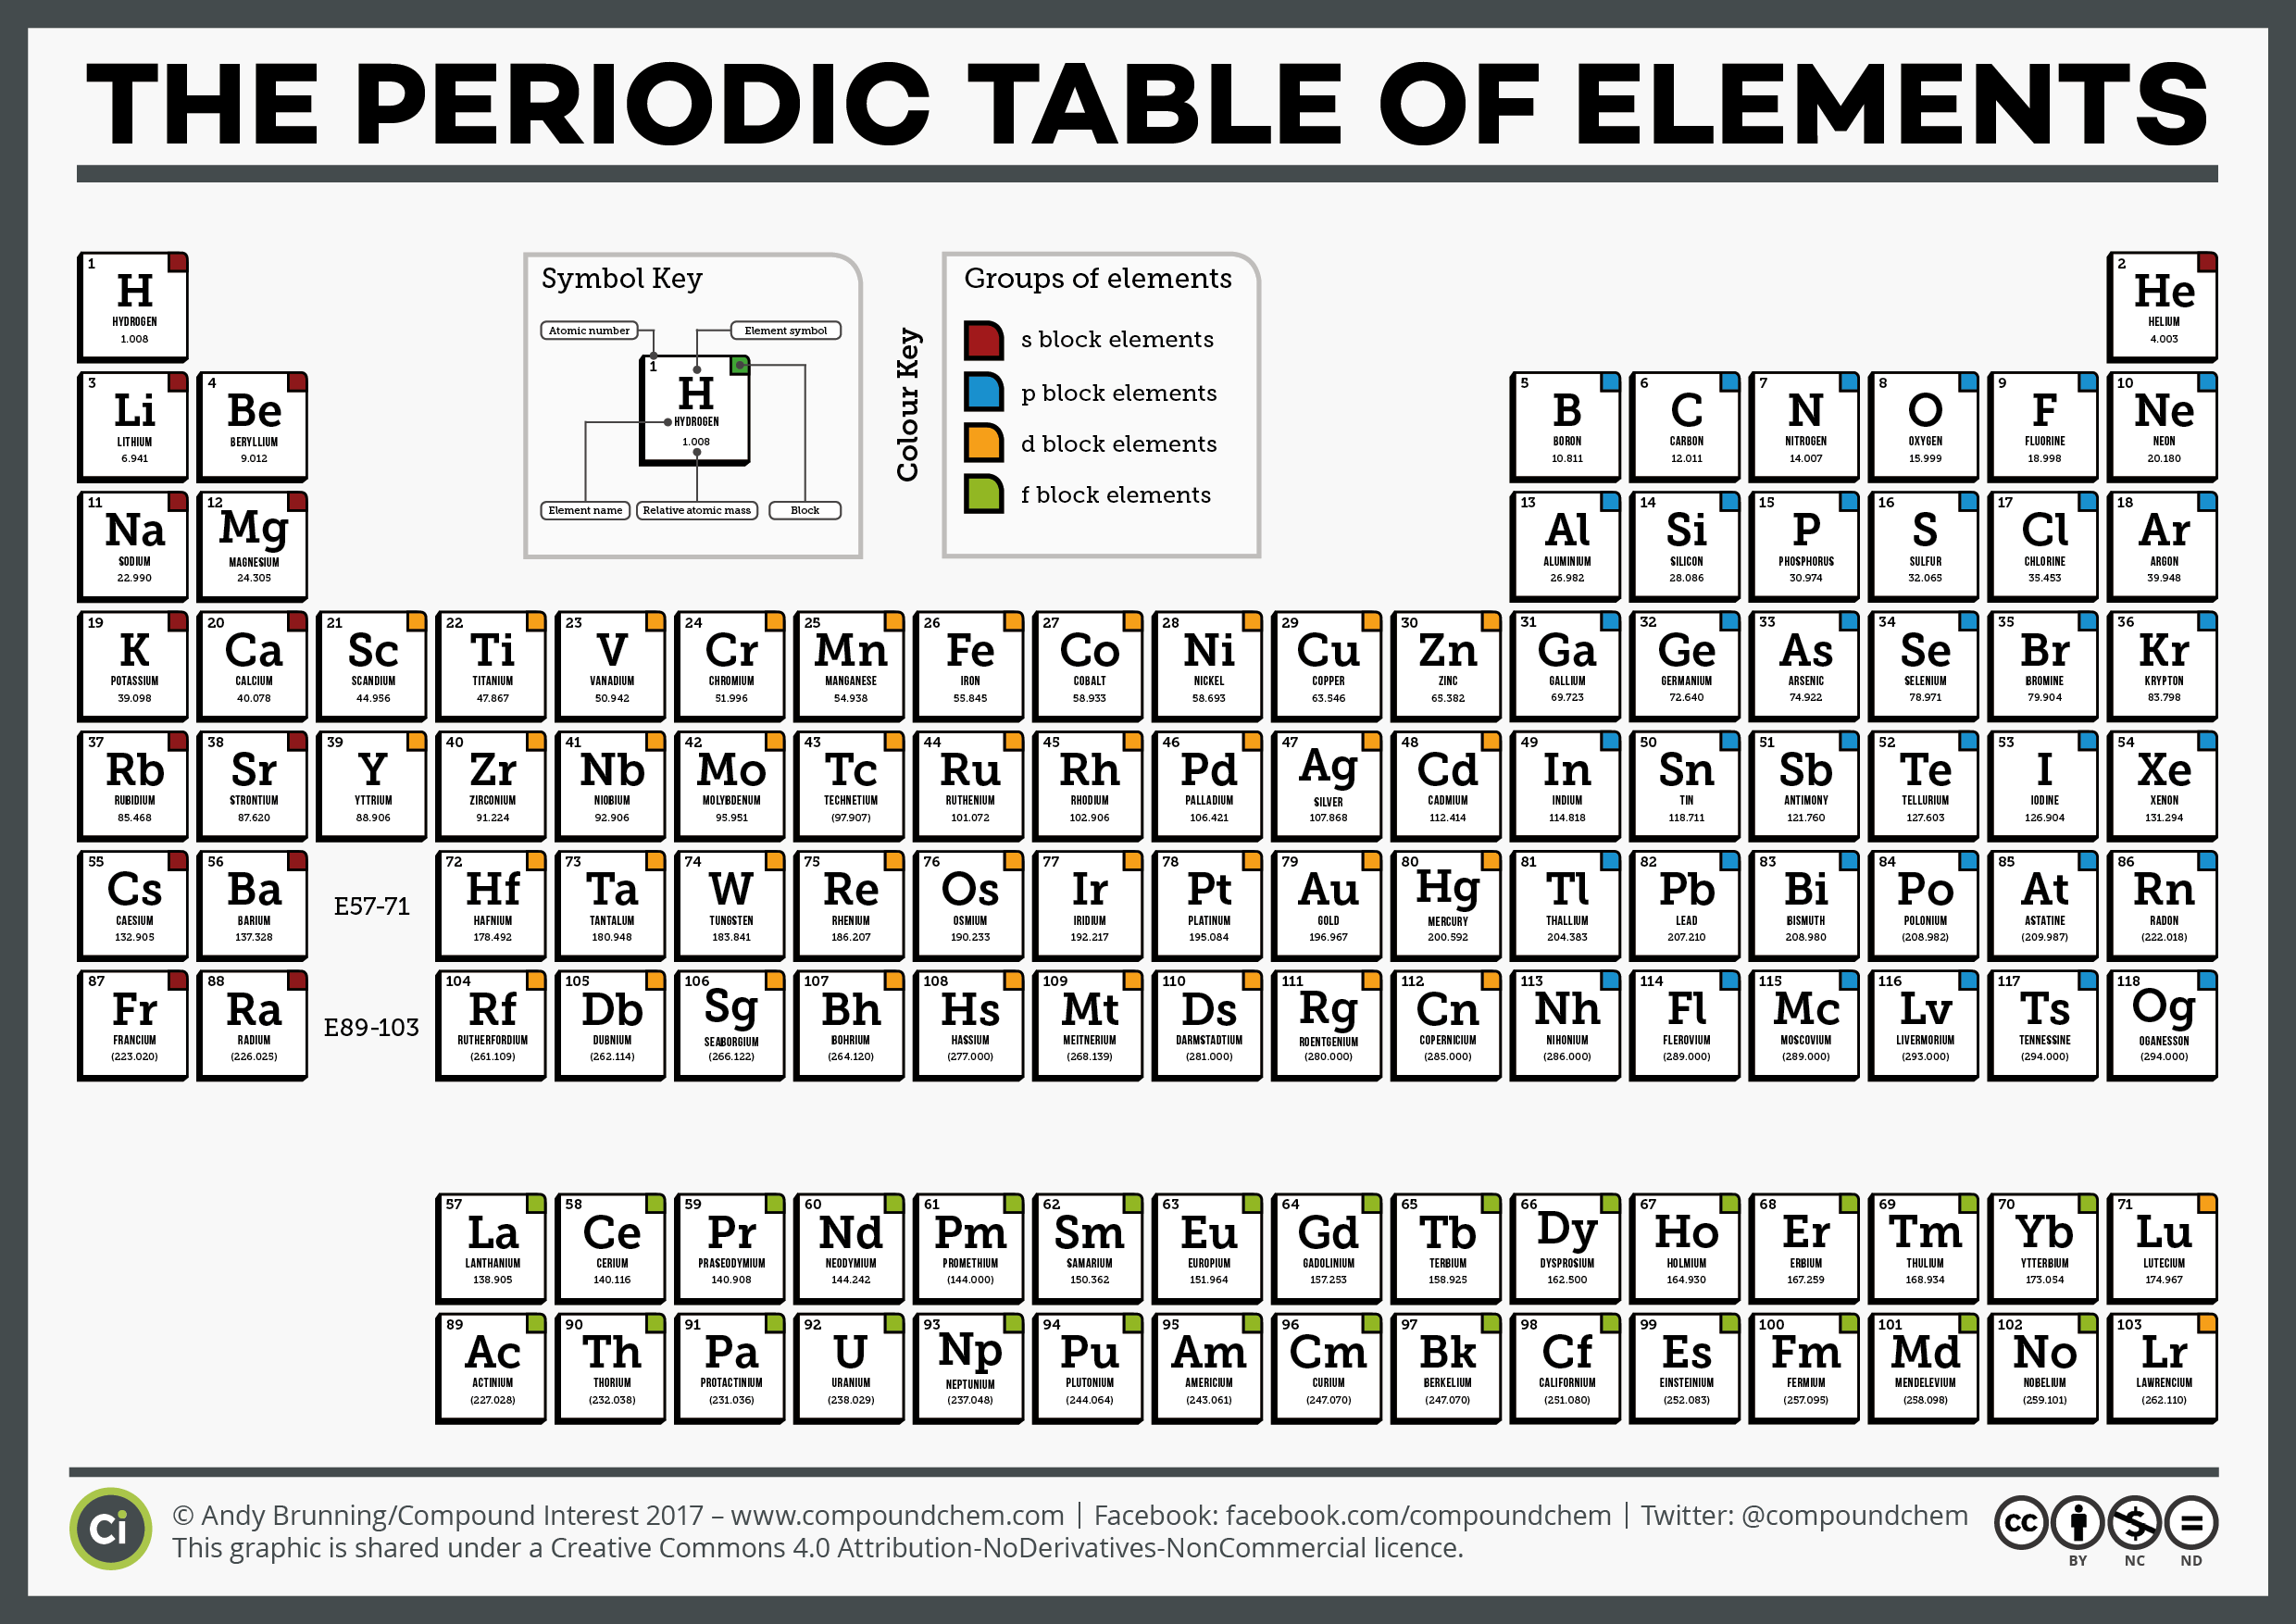 Compound interest national periodic table day six different ci simple periodic table of the elements 2017 gamestrikefo Choice Image